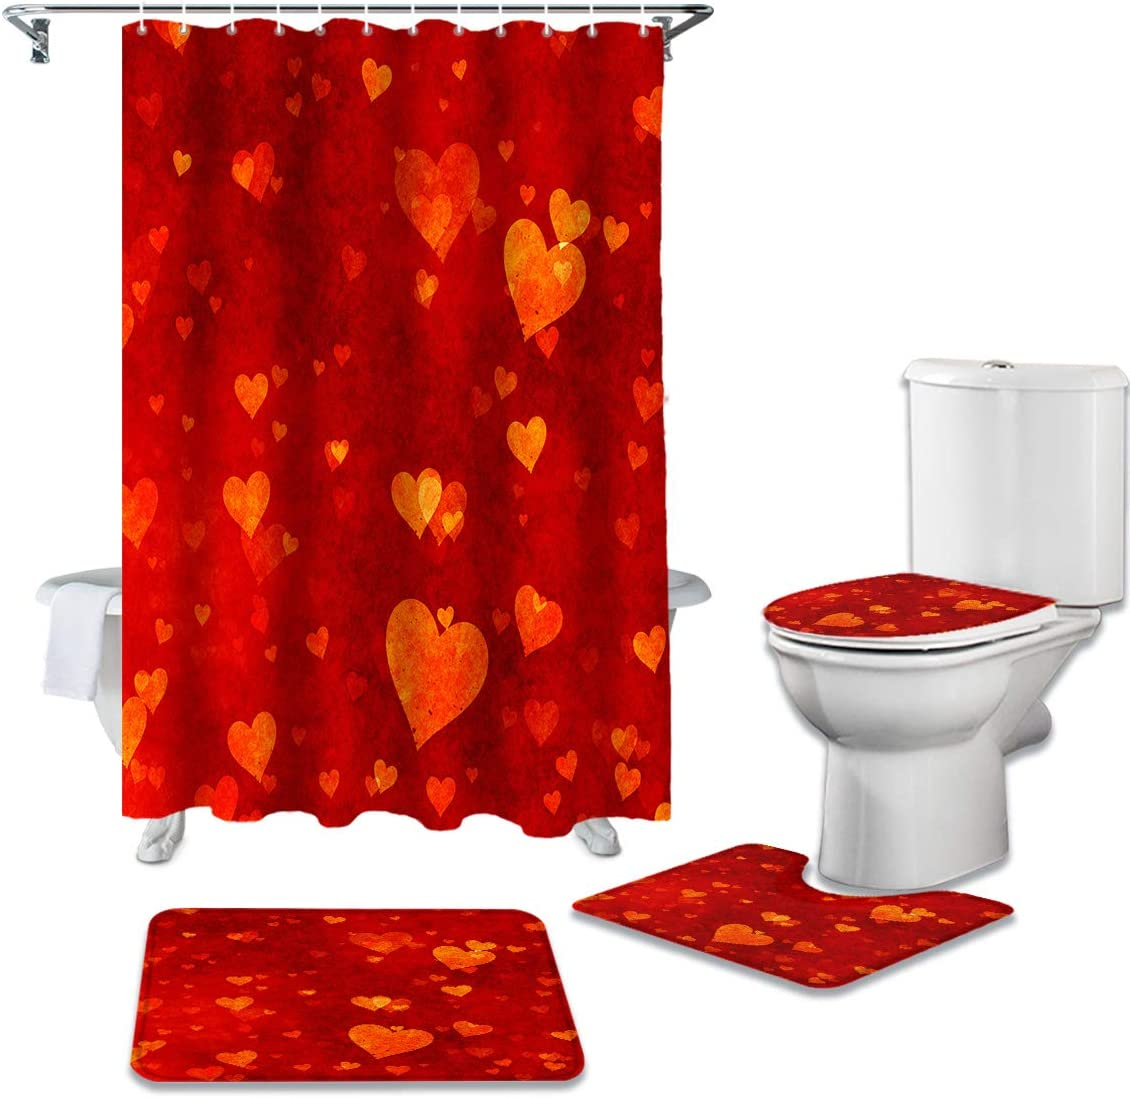 CHARMHOME 4 Spring new work Ranking TOP5 Piece Shower Curtain Sets Non-Slip Toilet Rug with